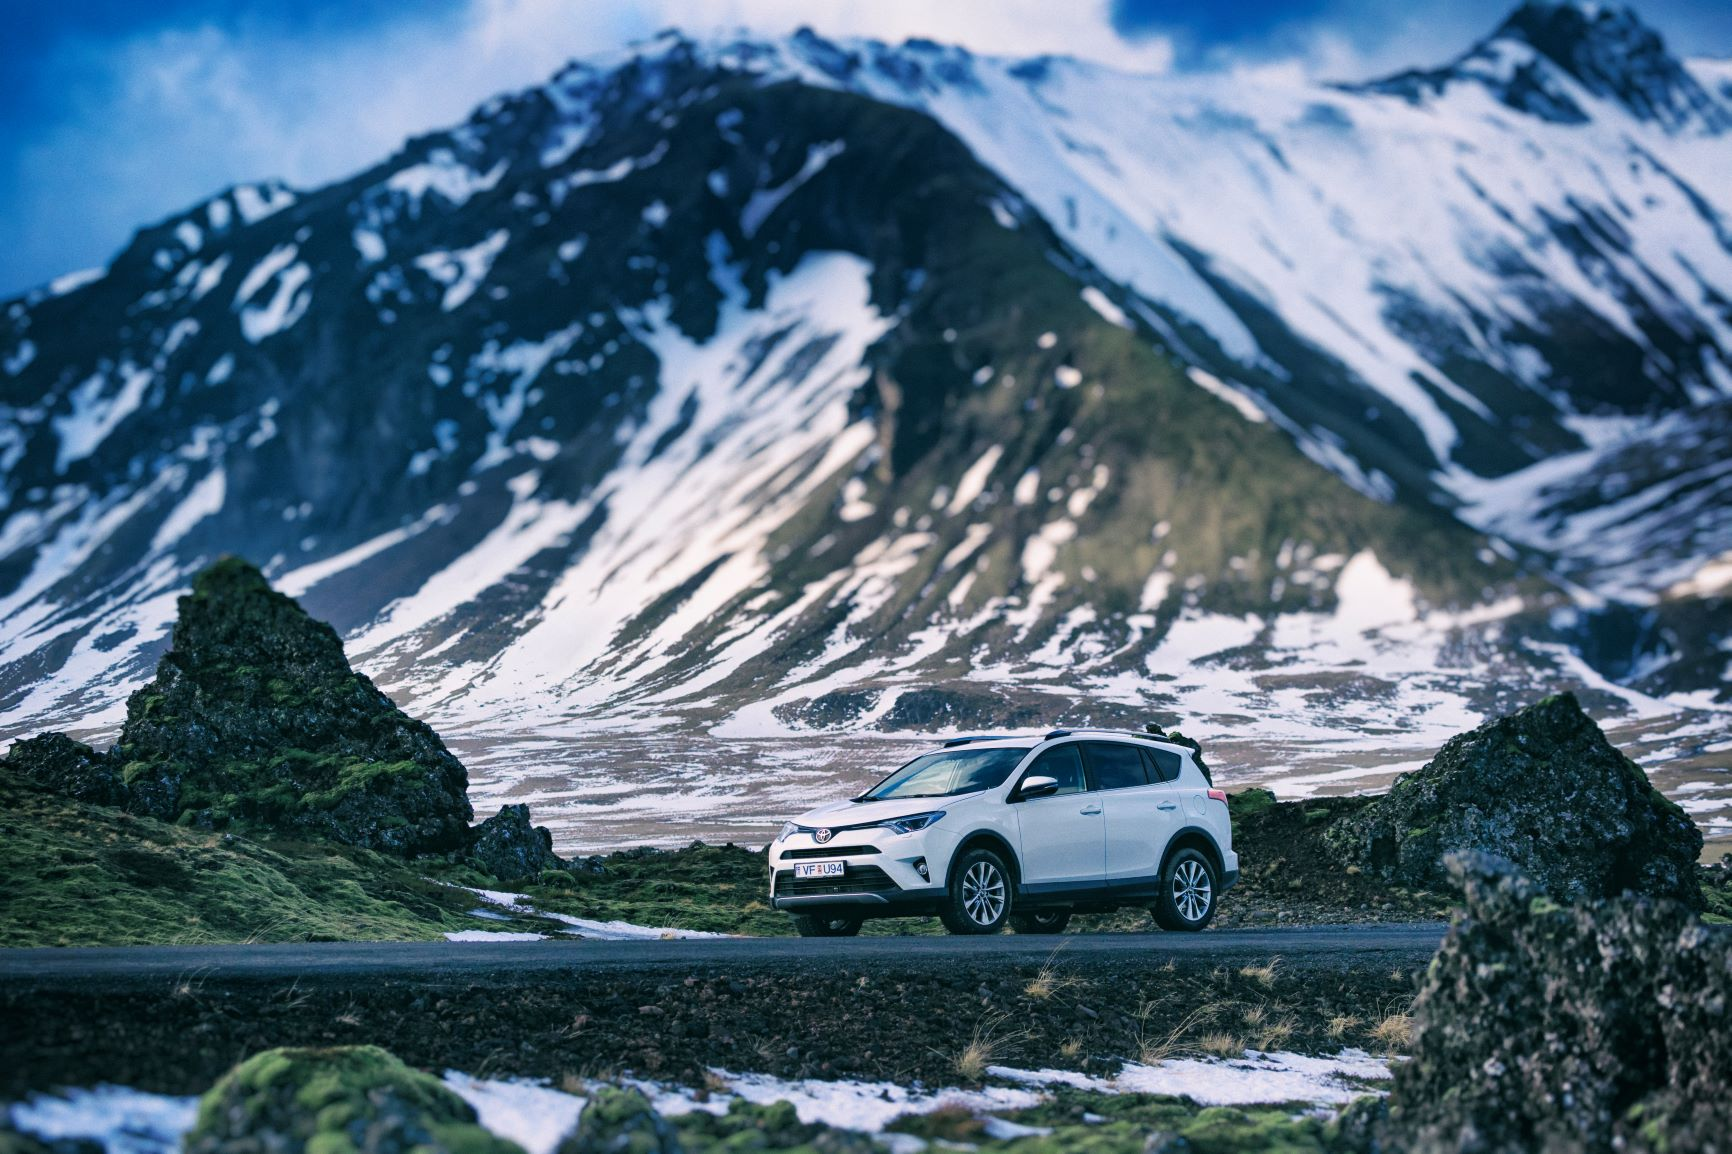 White Toyota Rental with Snowy Mountain Range Background